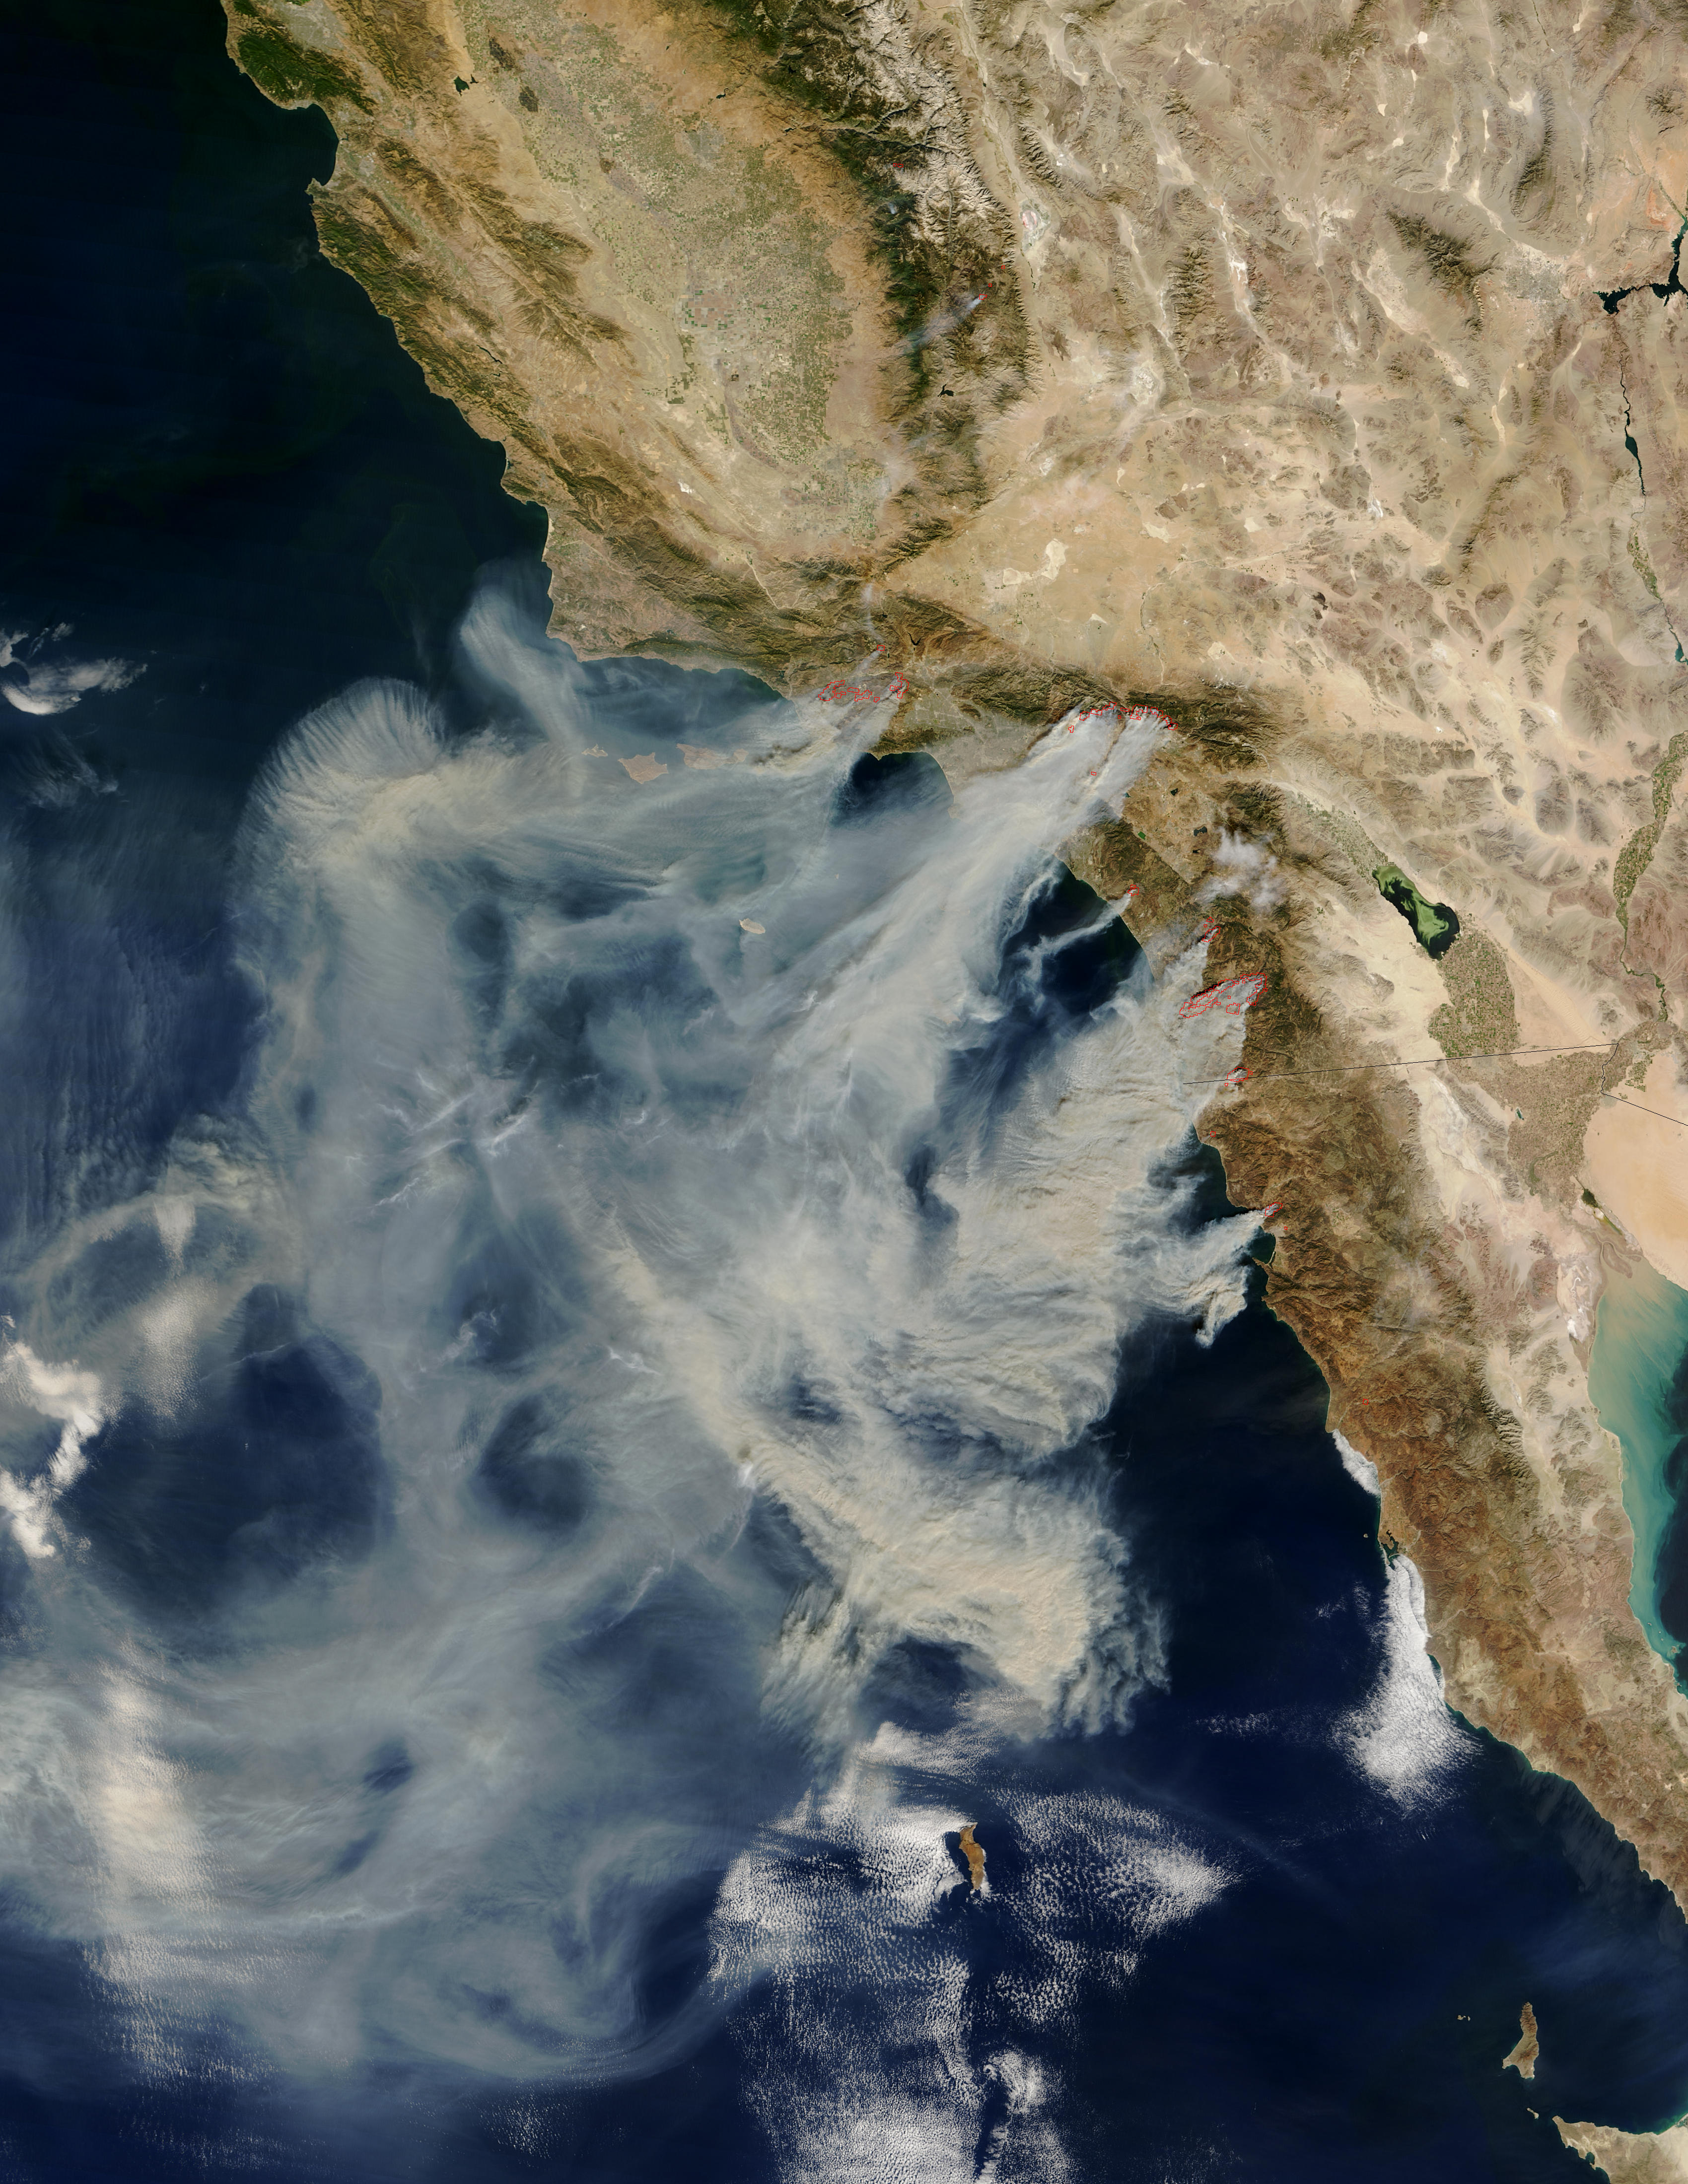 Santa Ana fire smoke plumes. MODIS mage from NASA